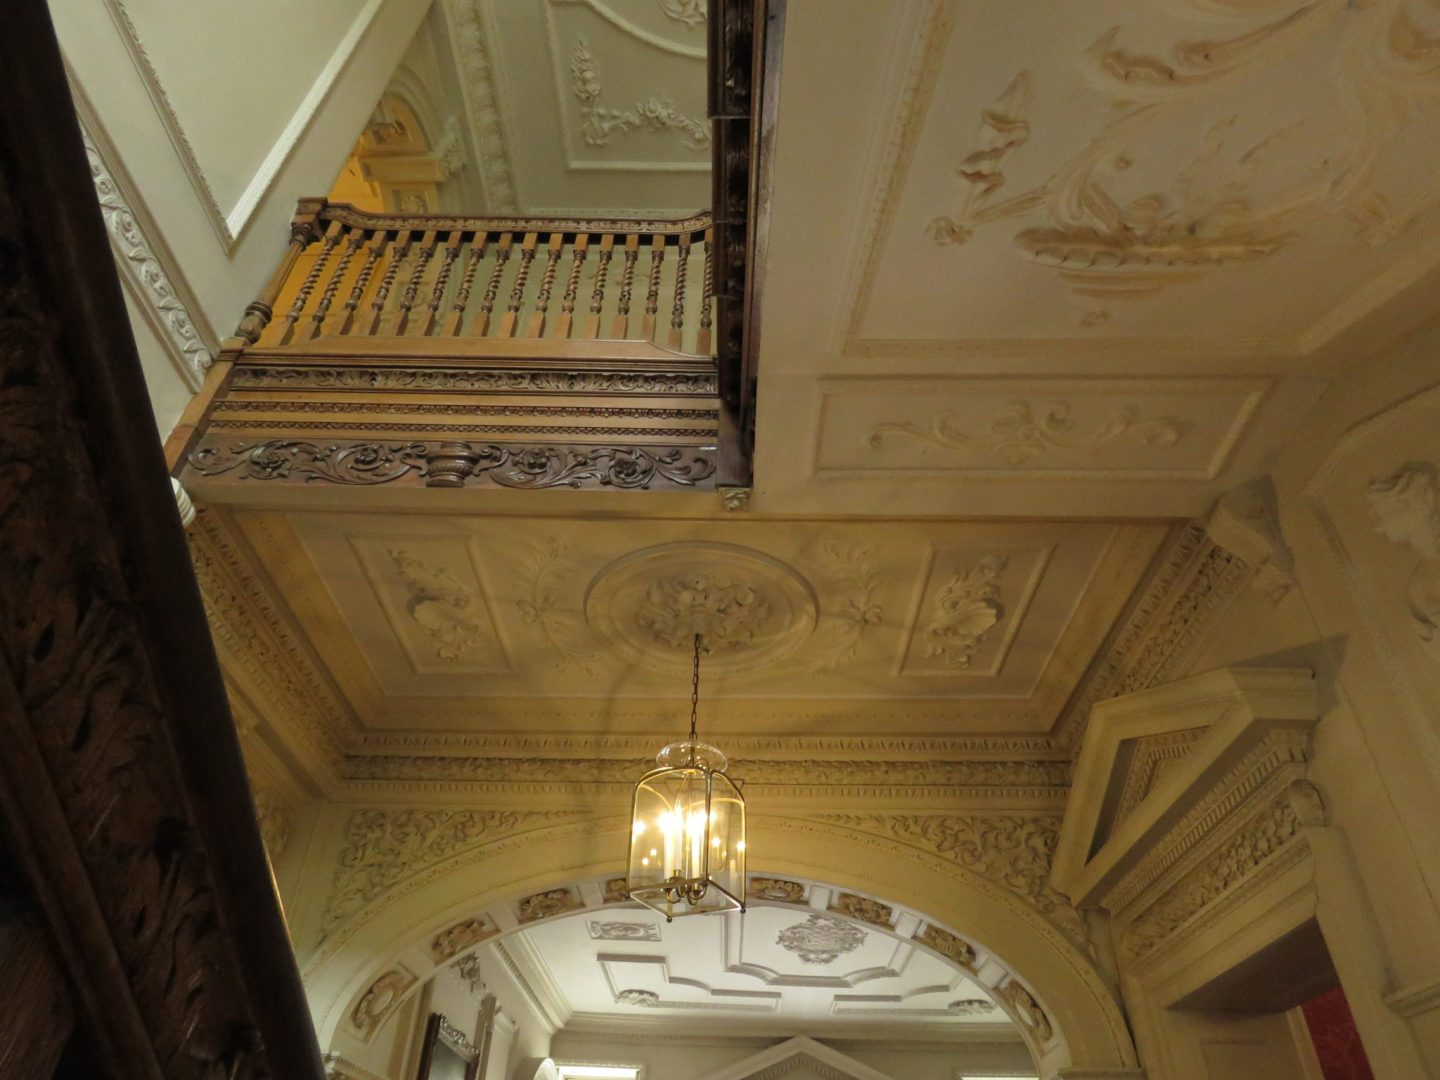 Elaborate plasterwork in the 18th century Mompesson House, Salisbury